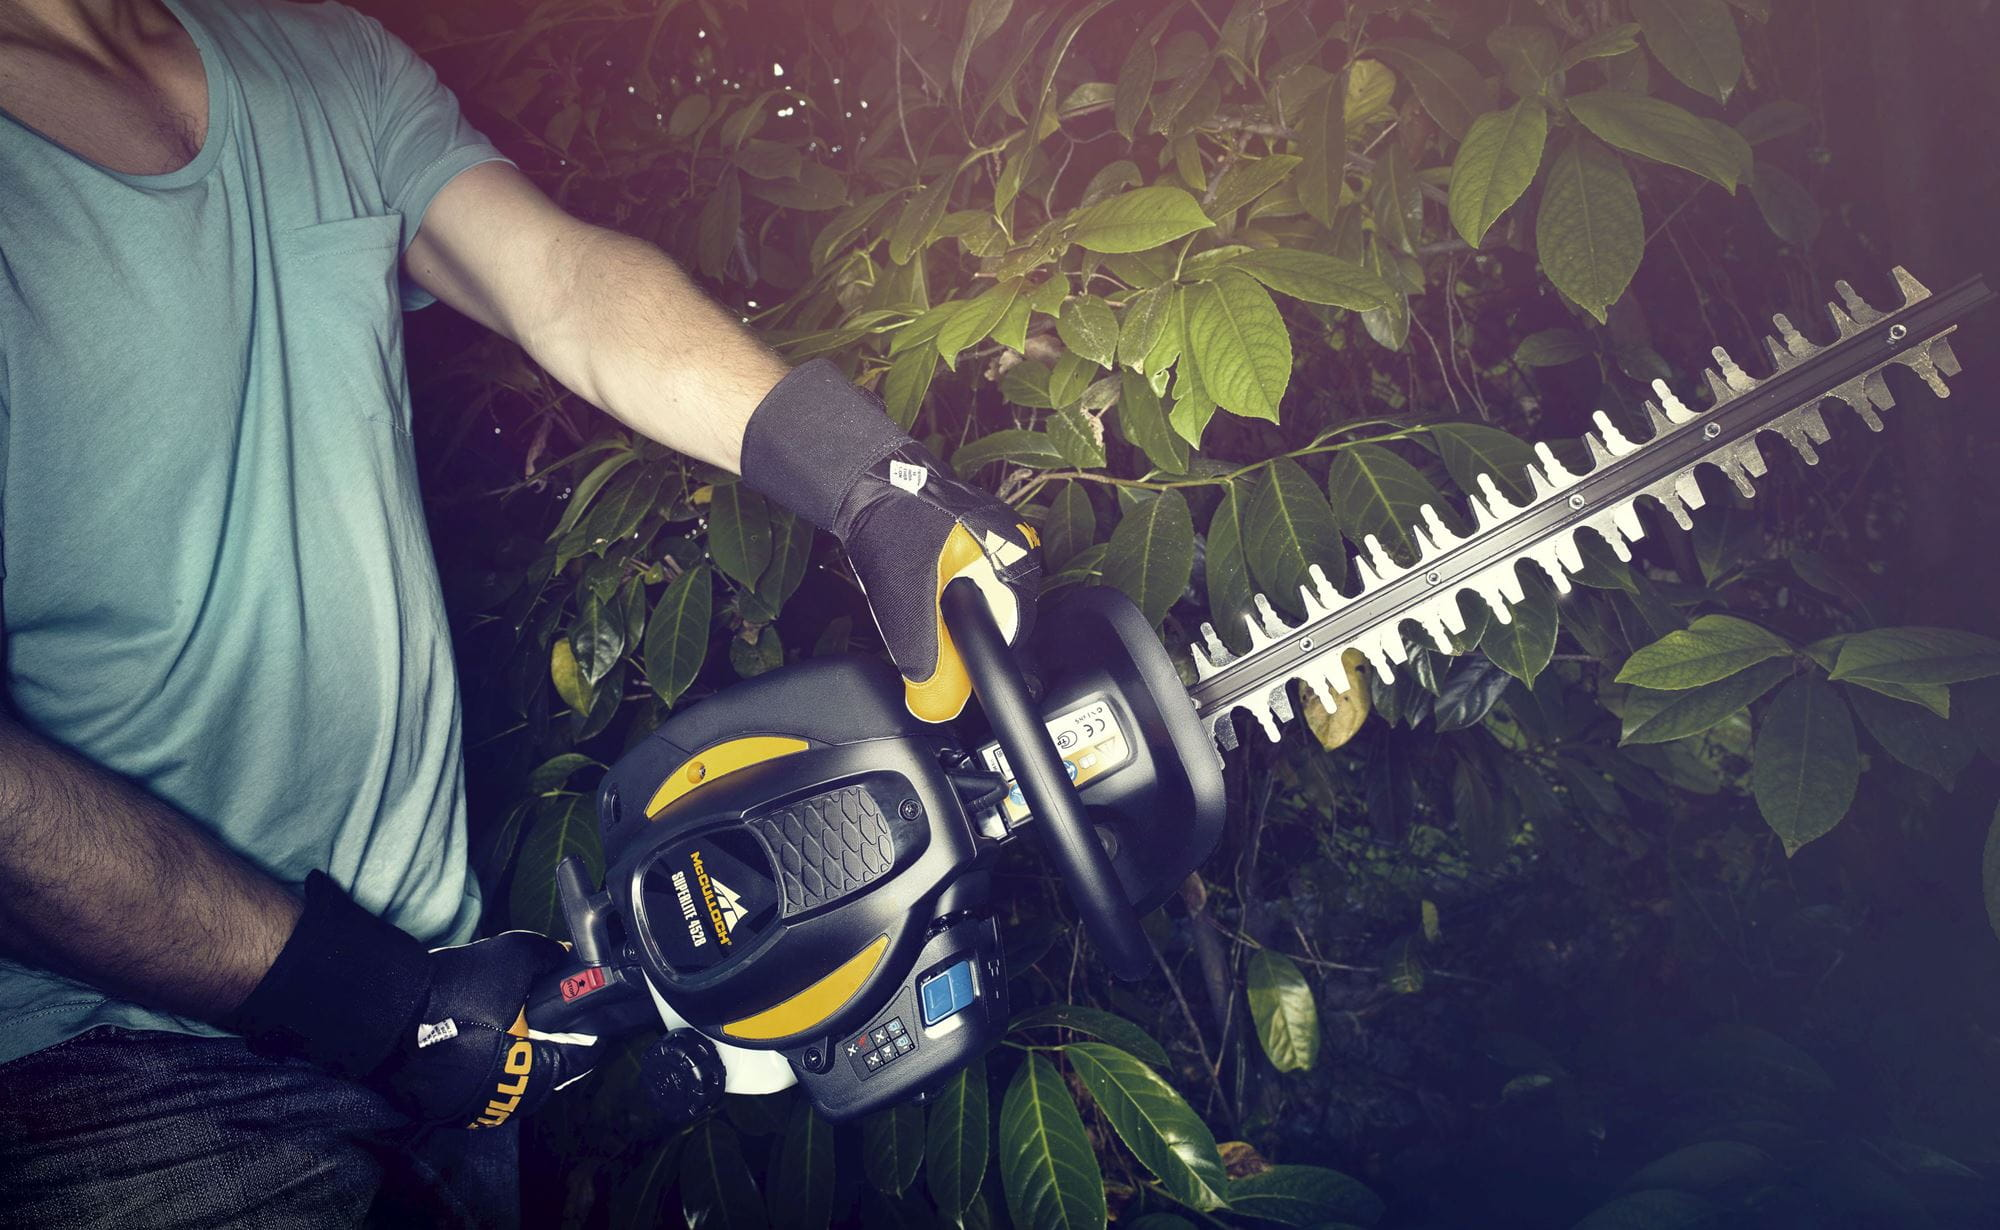 McCulloch hedge trimmers